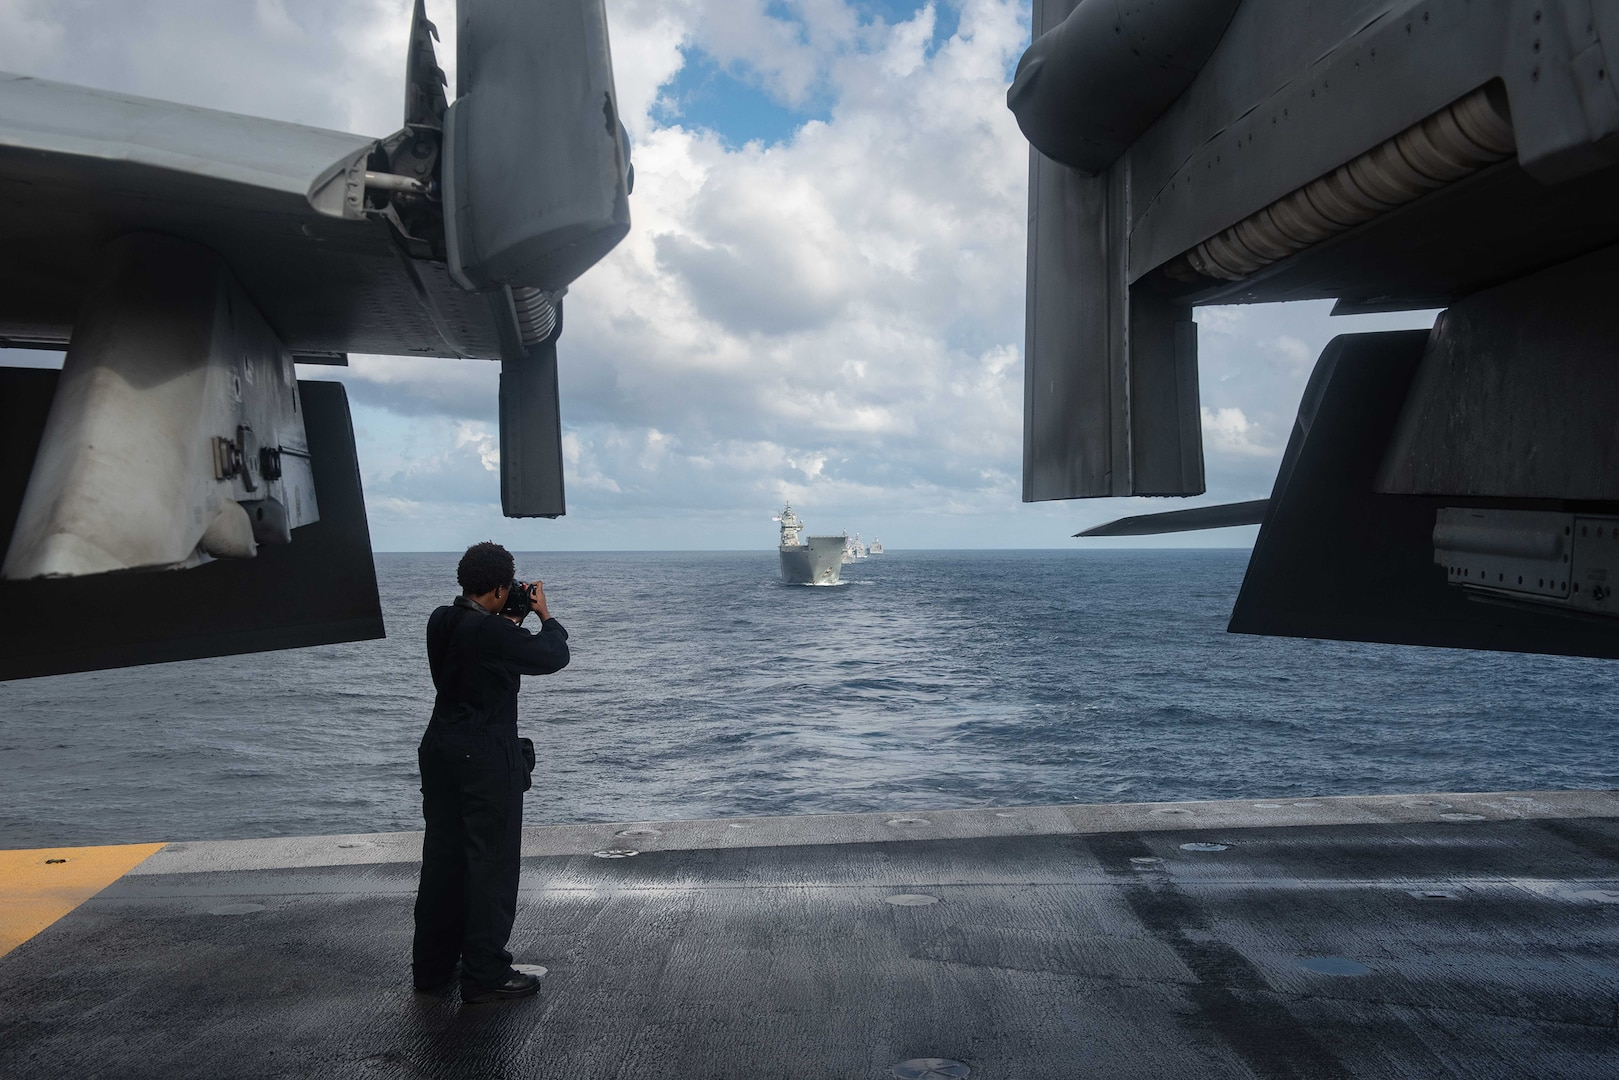 U.S., Allied Navies Begin Maneuvers for Talisman Sabre